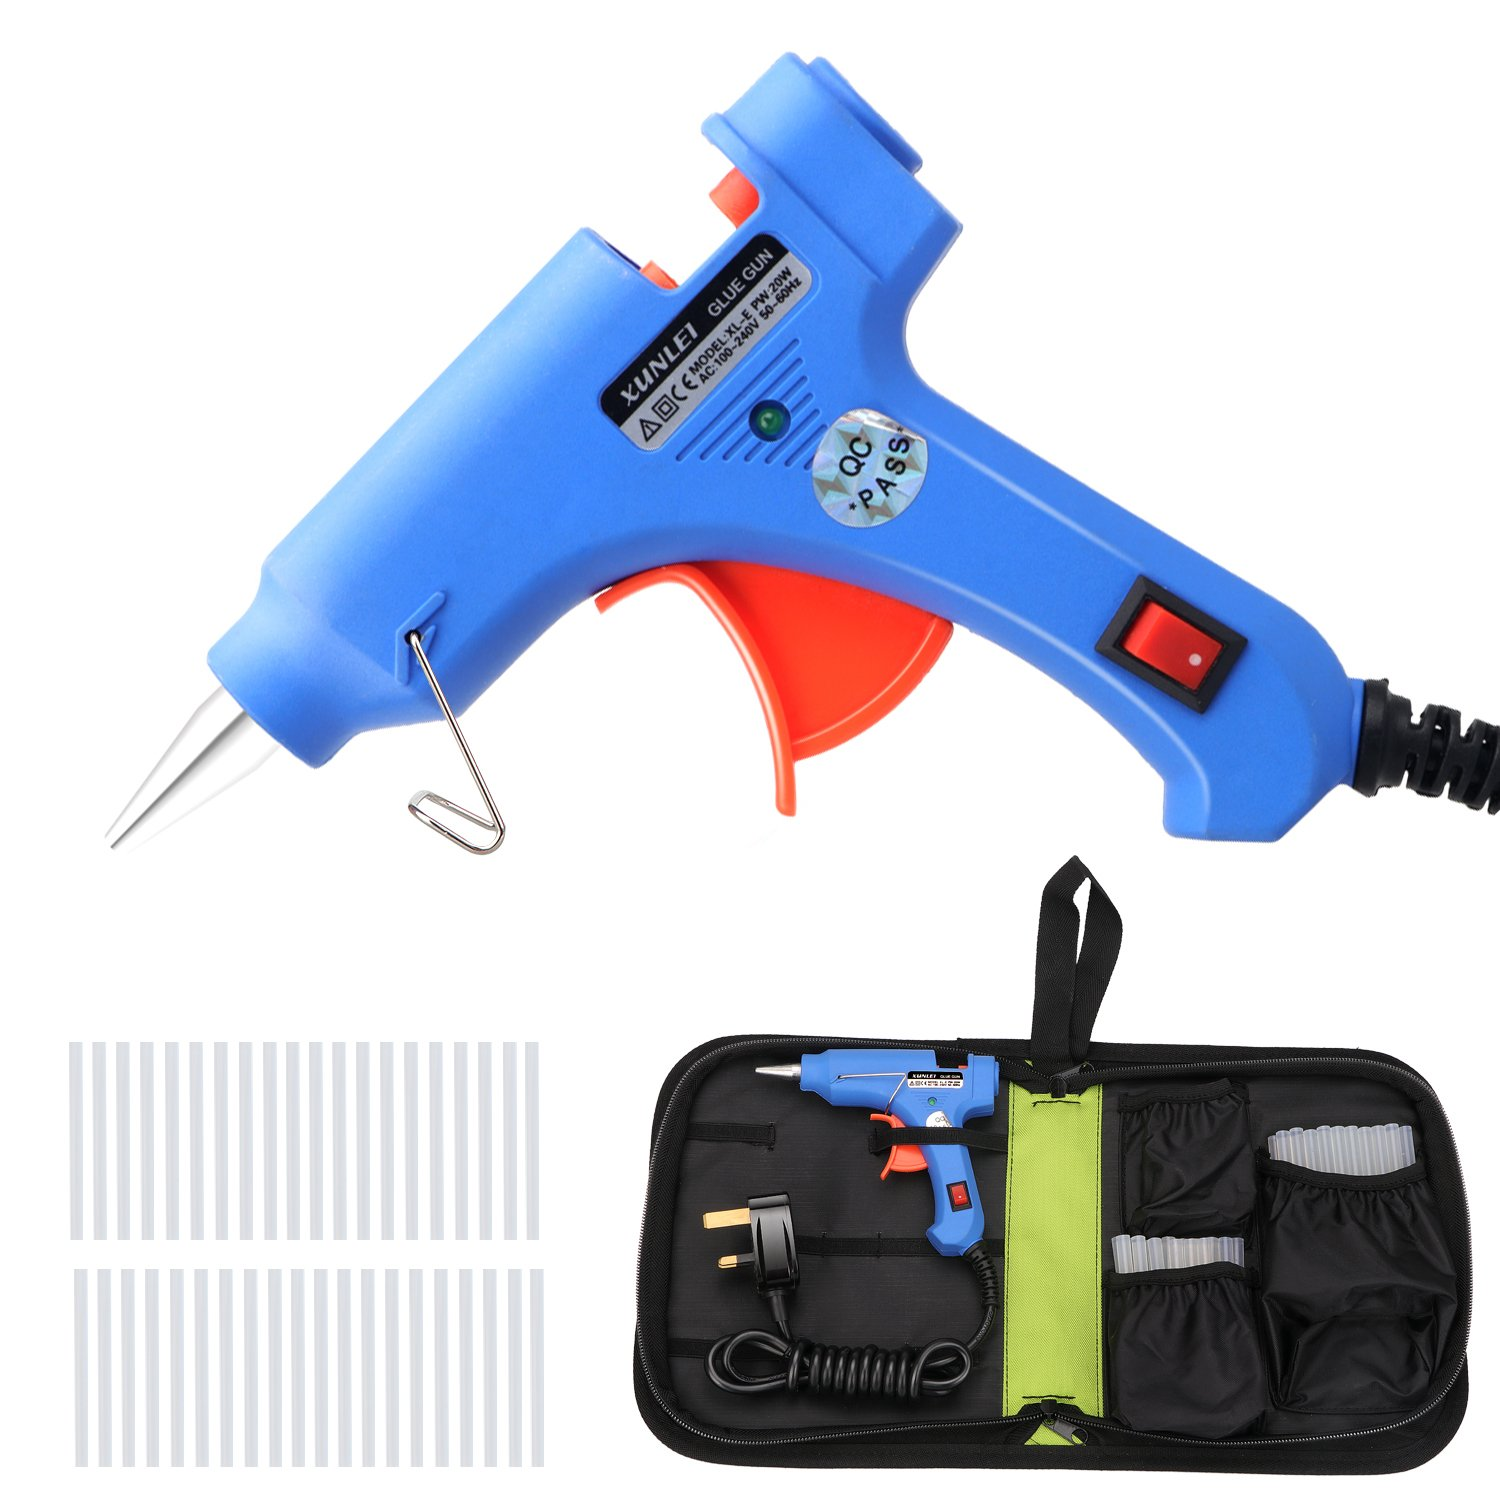 Mini Hot Melt Glue Gun with 40pcs Glue Sticks and Carry Bag